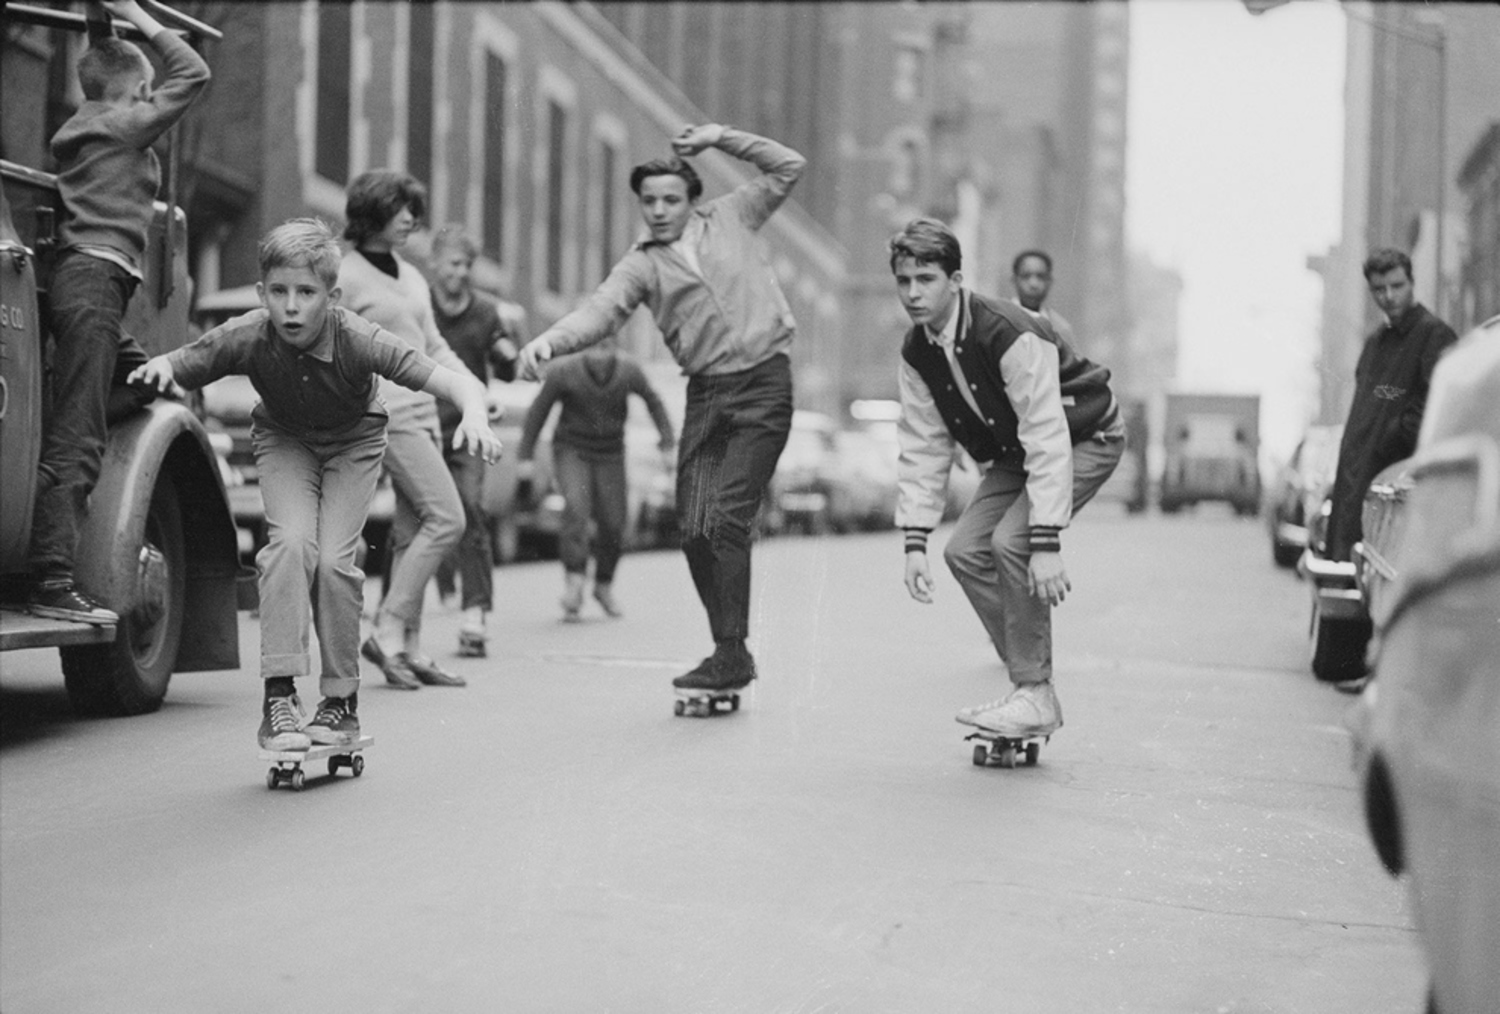 A group of boys skate down a street that probably hasn't been paved since.